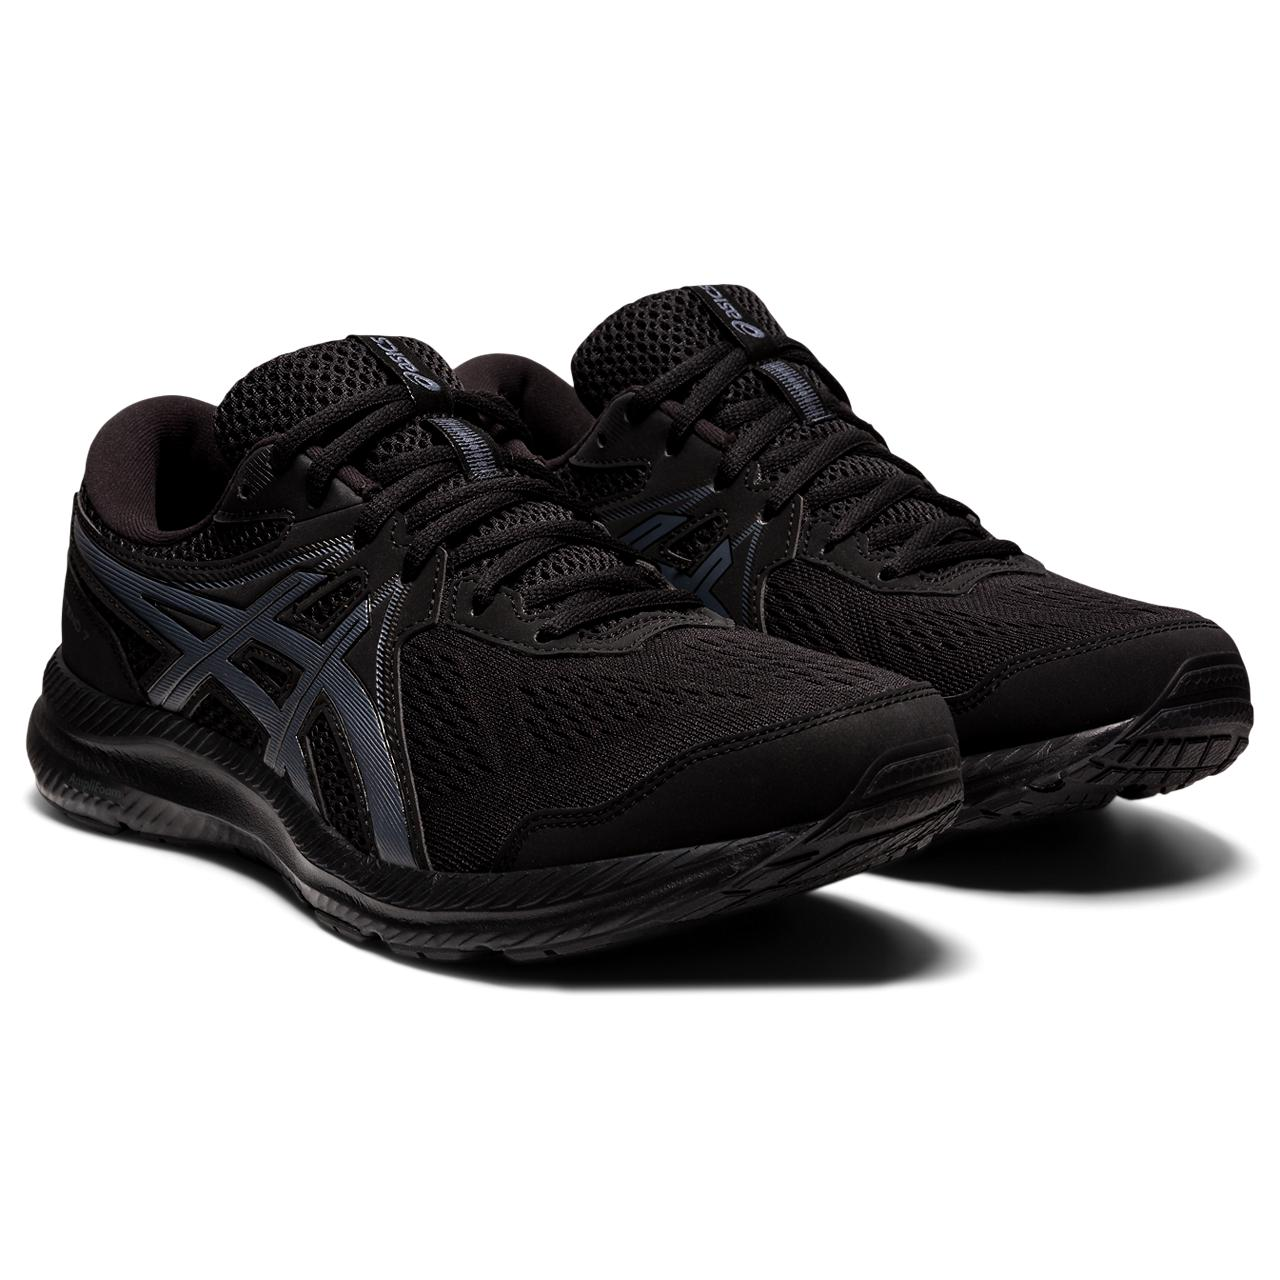 'ASICS' Men's Gel Contend 7 - Black / Grey